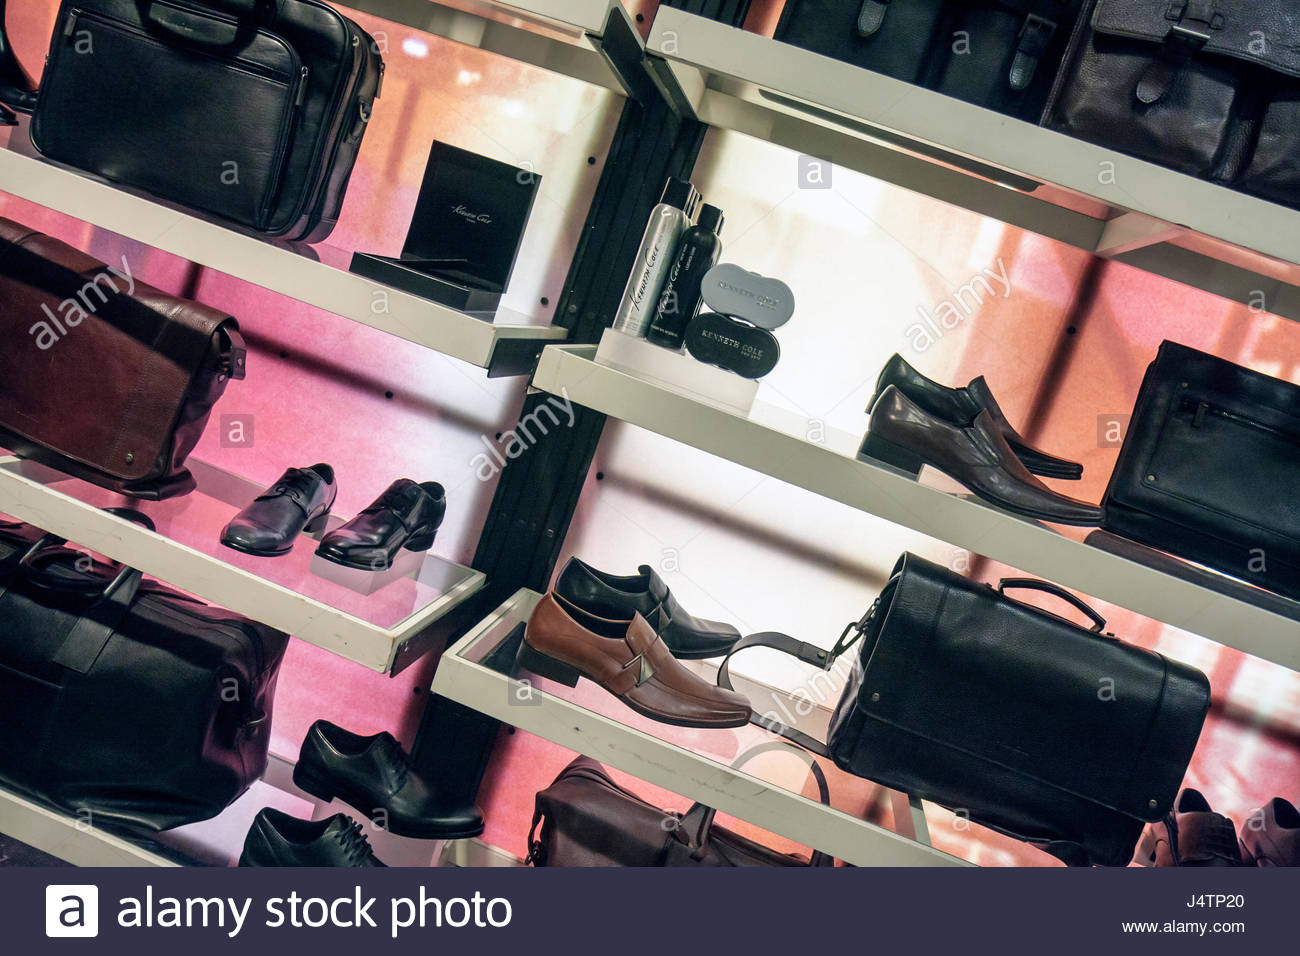 Miami Beach Florida Collins Avenue Kenneth Cole American designer leather goods accessories shopping fashion retail - Stock Image